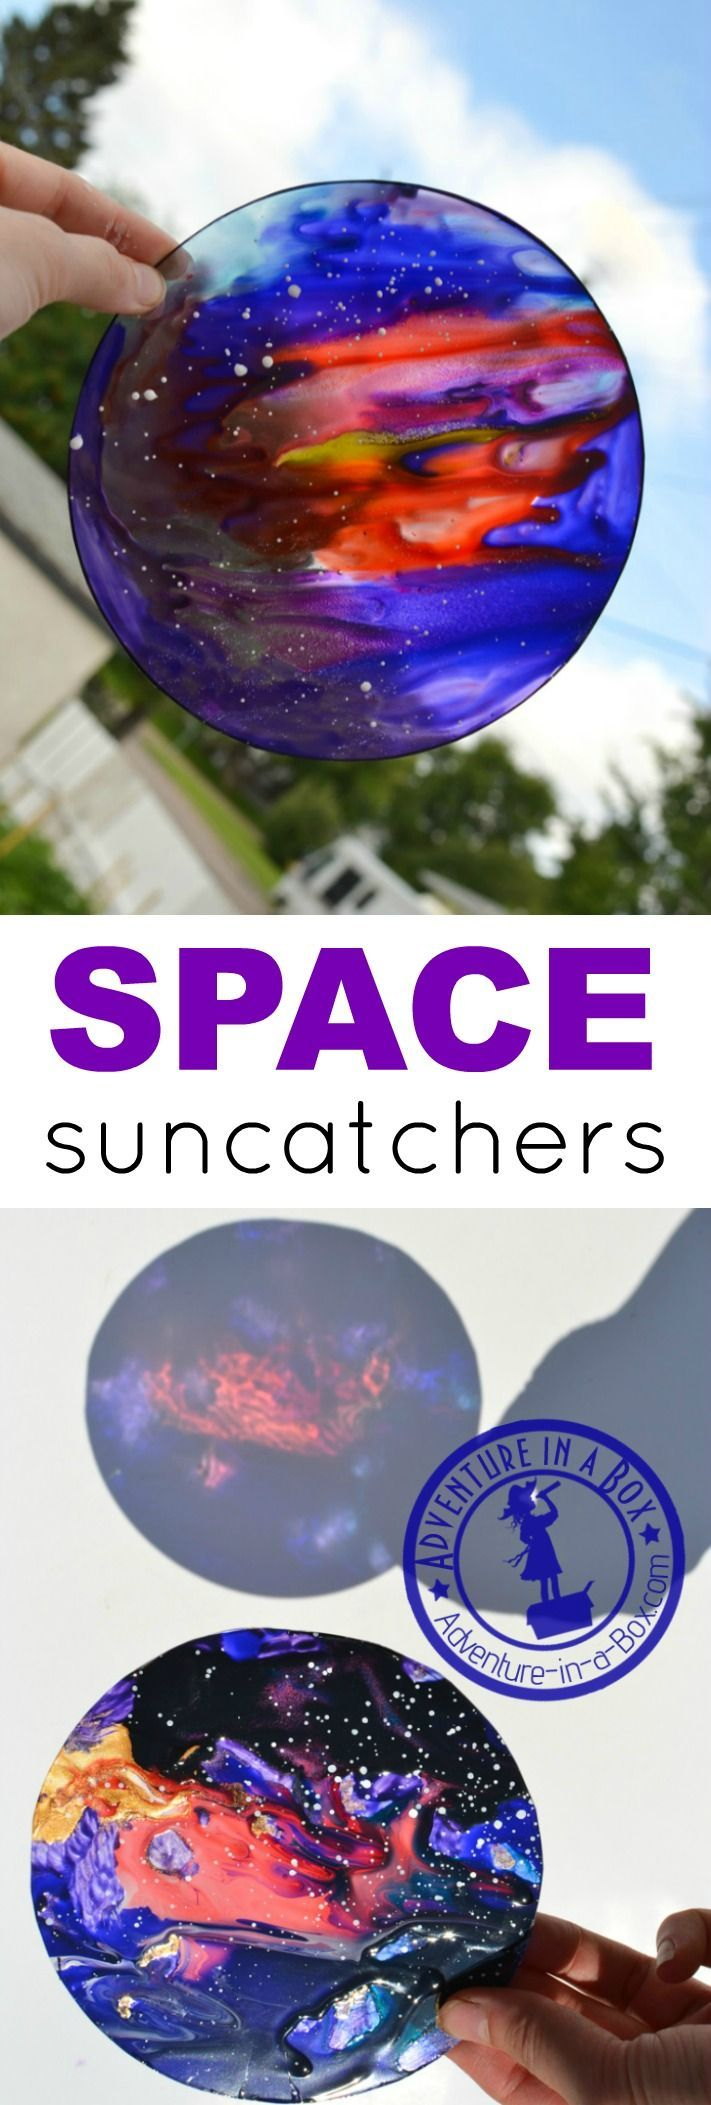 Make the space suncatchers from plastic plates or other clear plastic recyclables! Out-of-the-world craft for kids who are interested in cosmos.